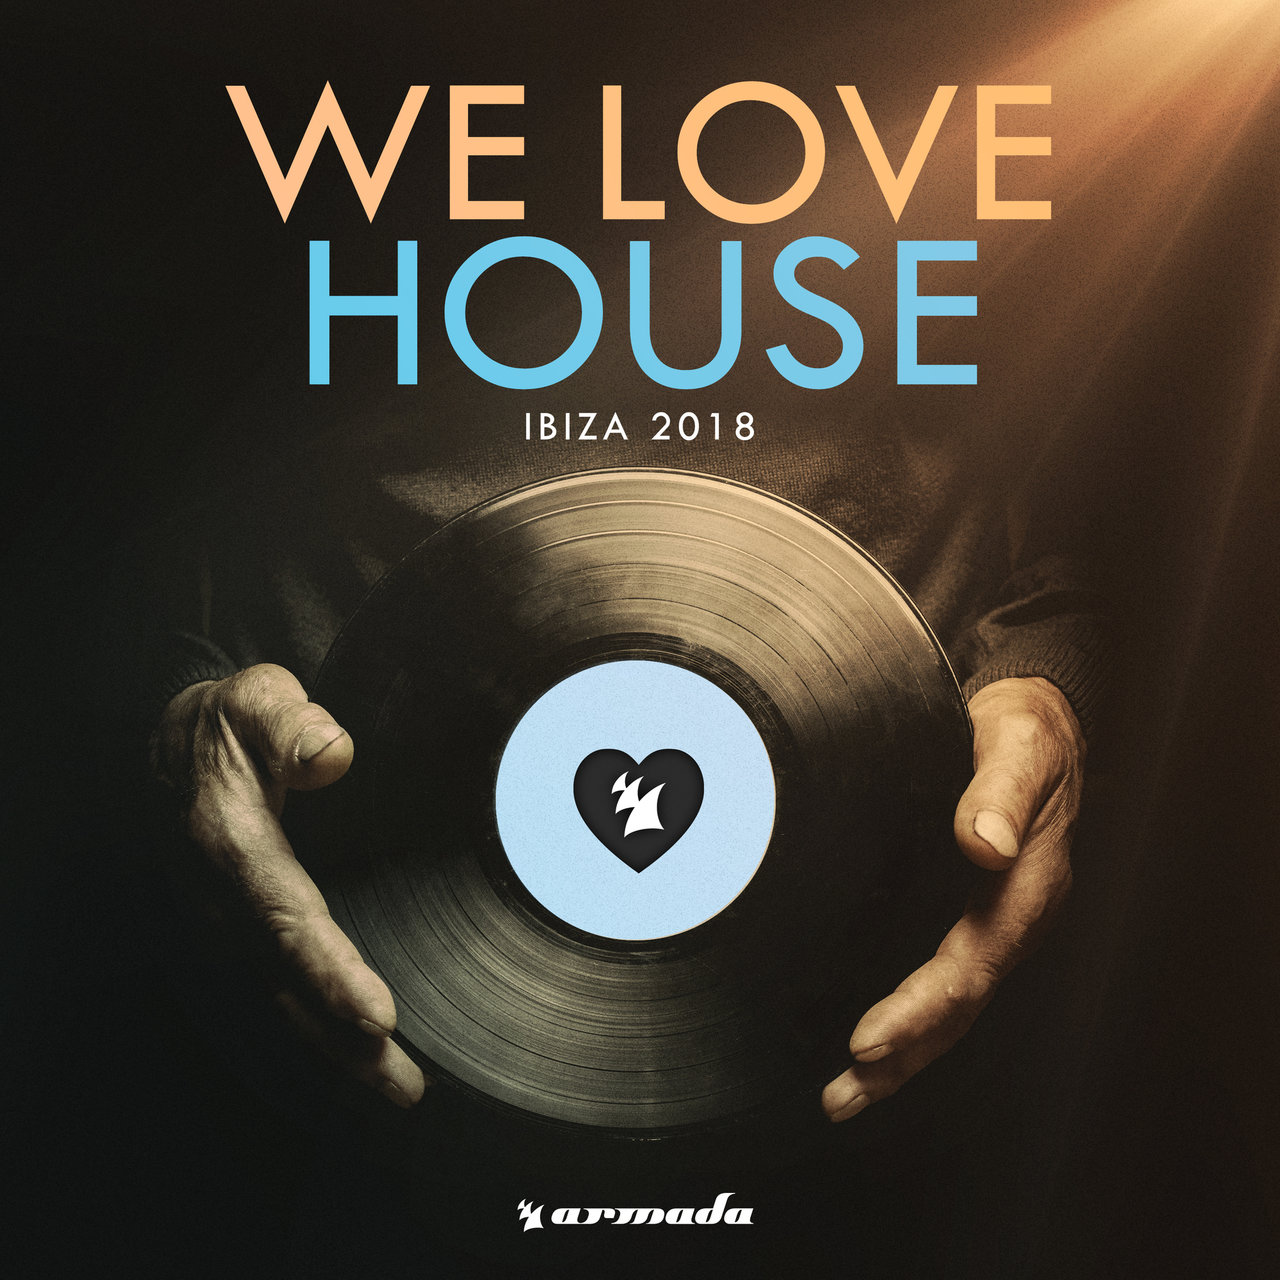 We Love House - Ibiza 2018